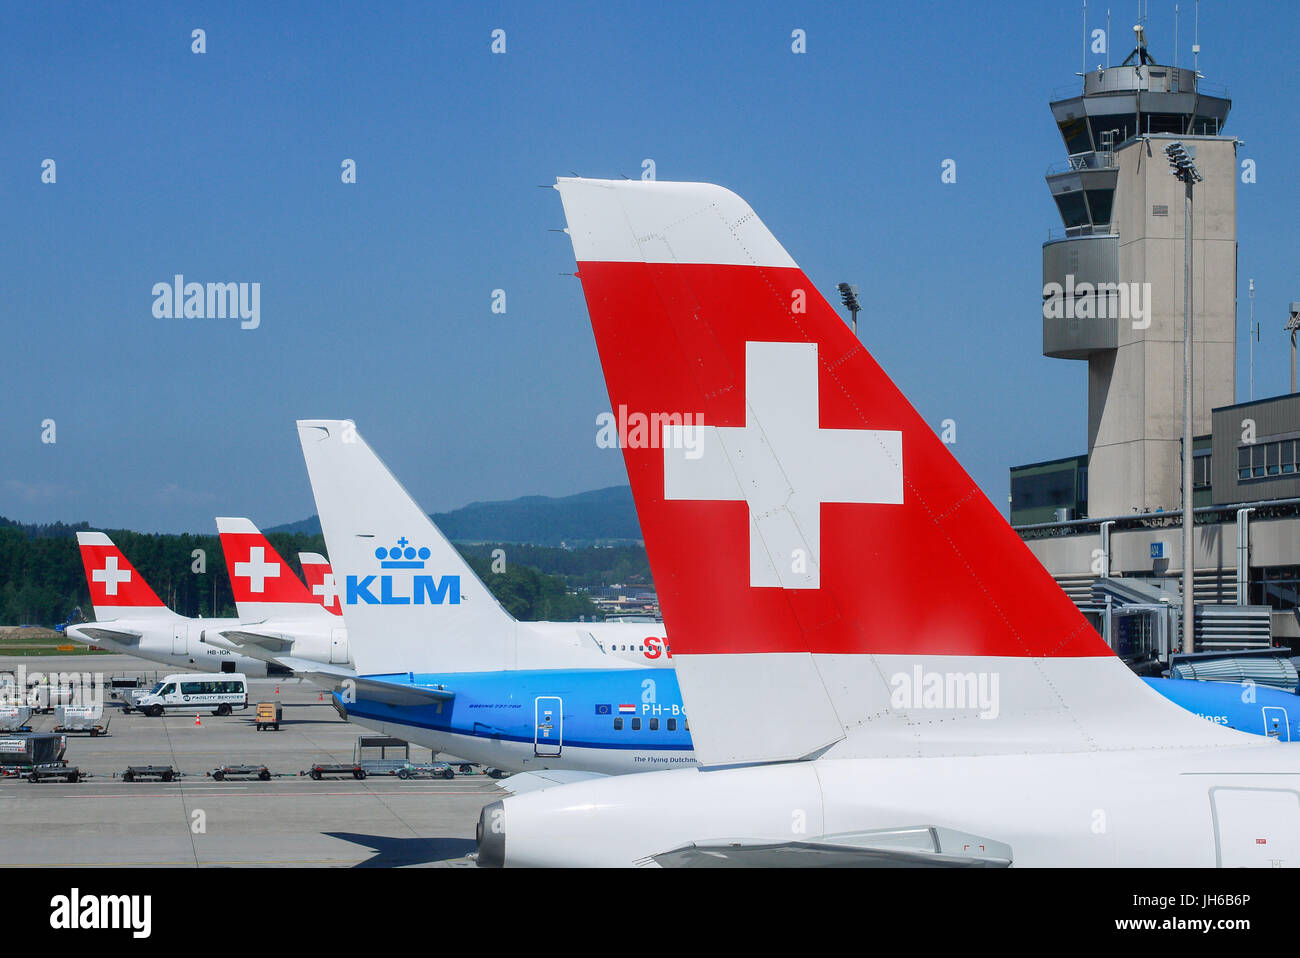 General view of Zurich airport (Swiss) - Stock Image